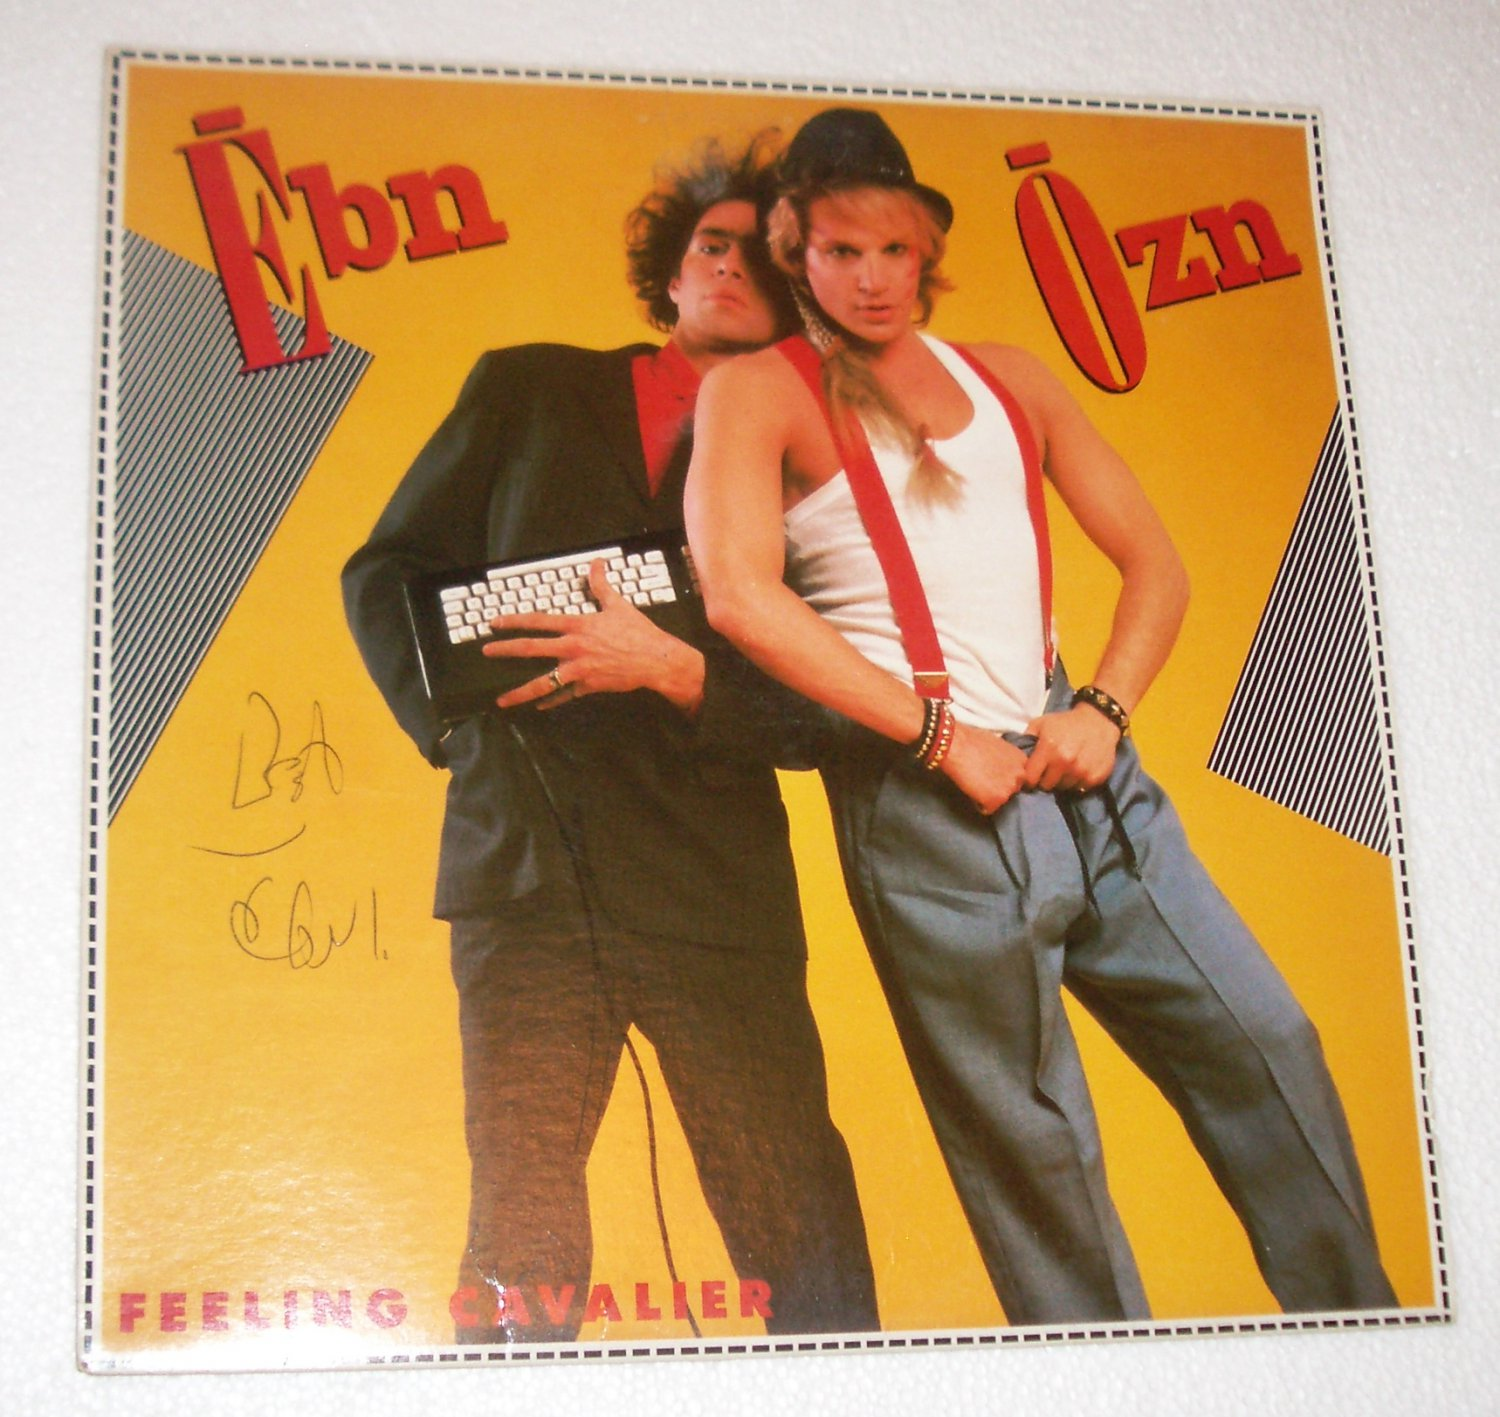 "Ebn Ozn Feeling Cavalier New Wave 1984 12"" Lp  Elektra SIGNED AUTOGRAPHED"